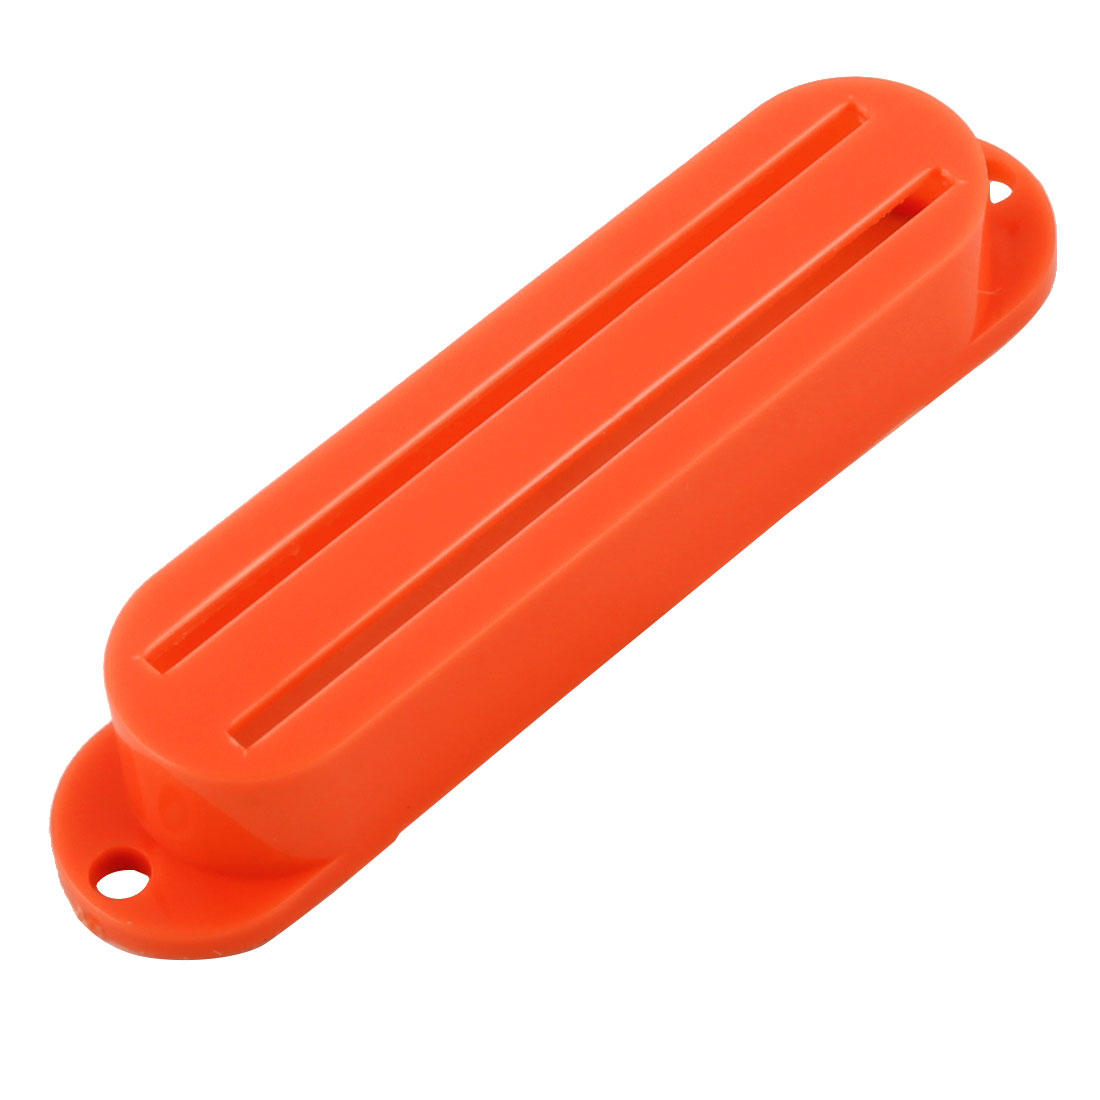 Plastic Double Track Humbucker Neck Bridge Acoustic Guitar Pickup Covers Orange